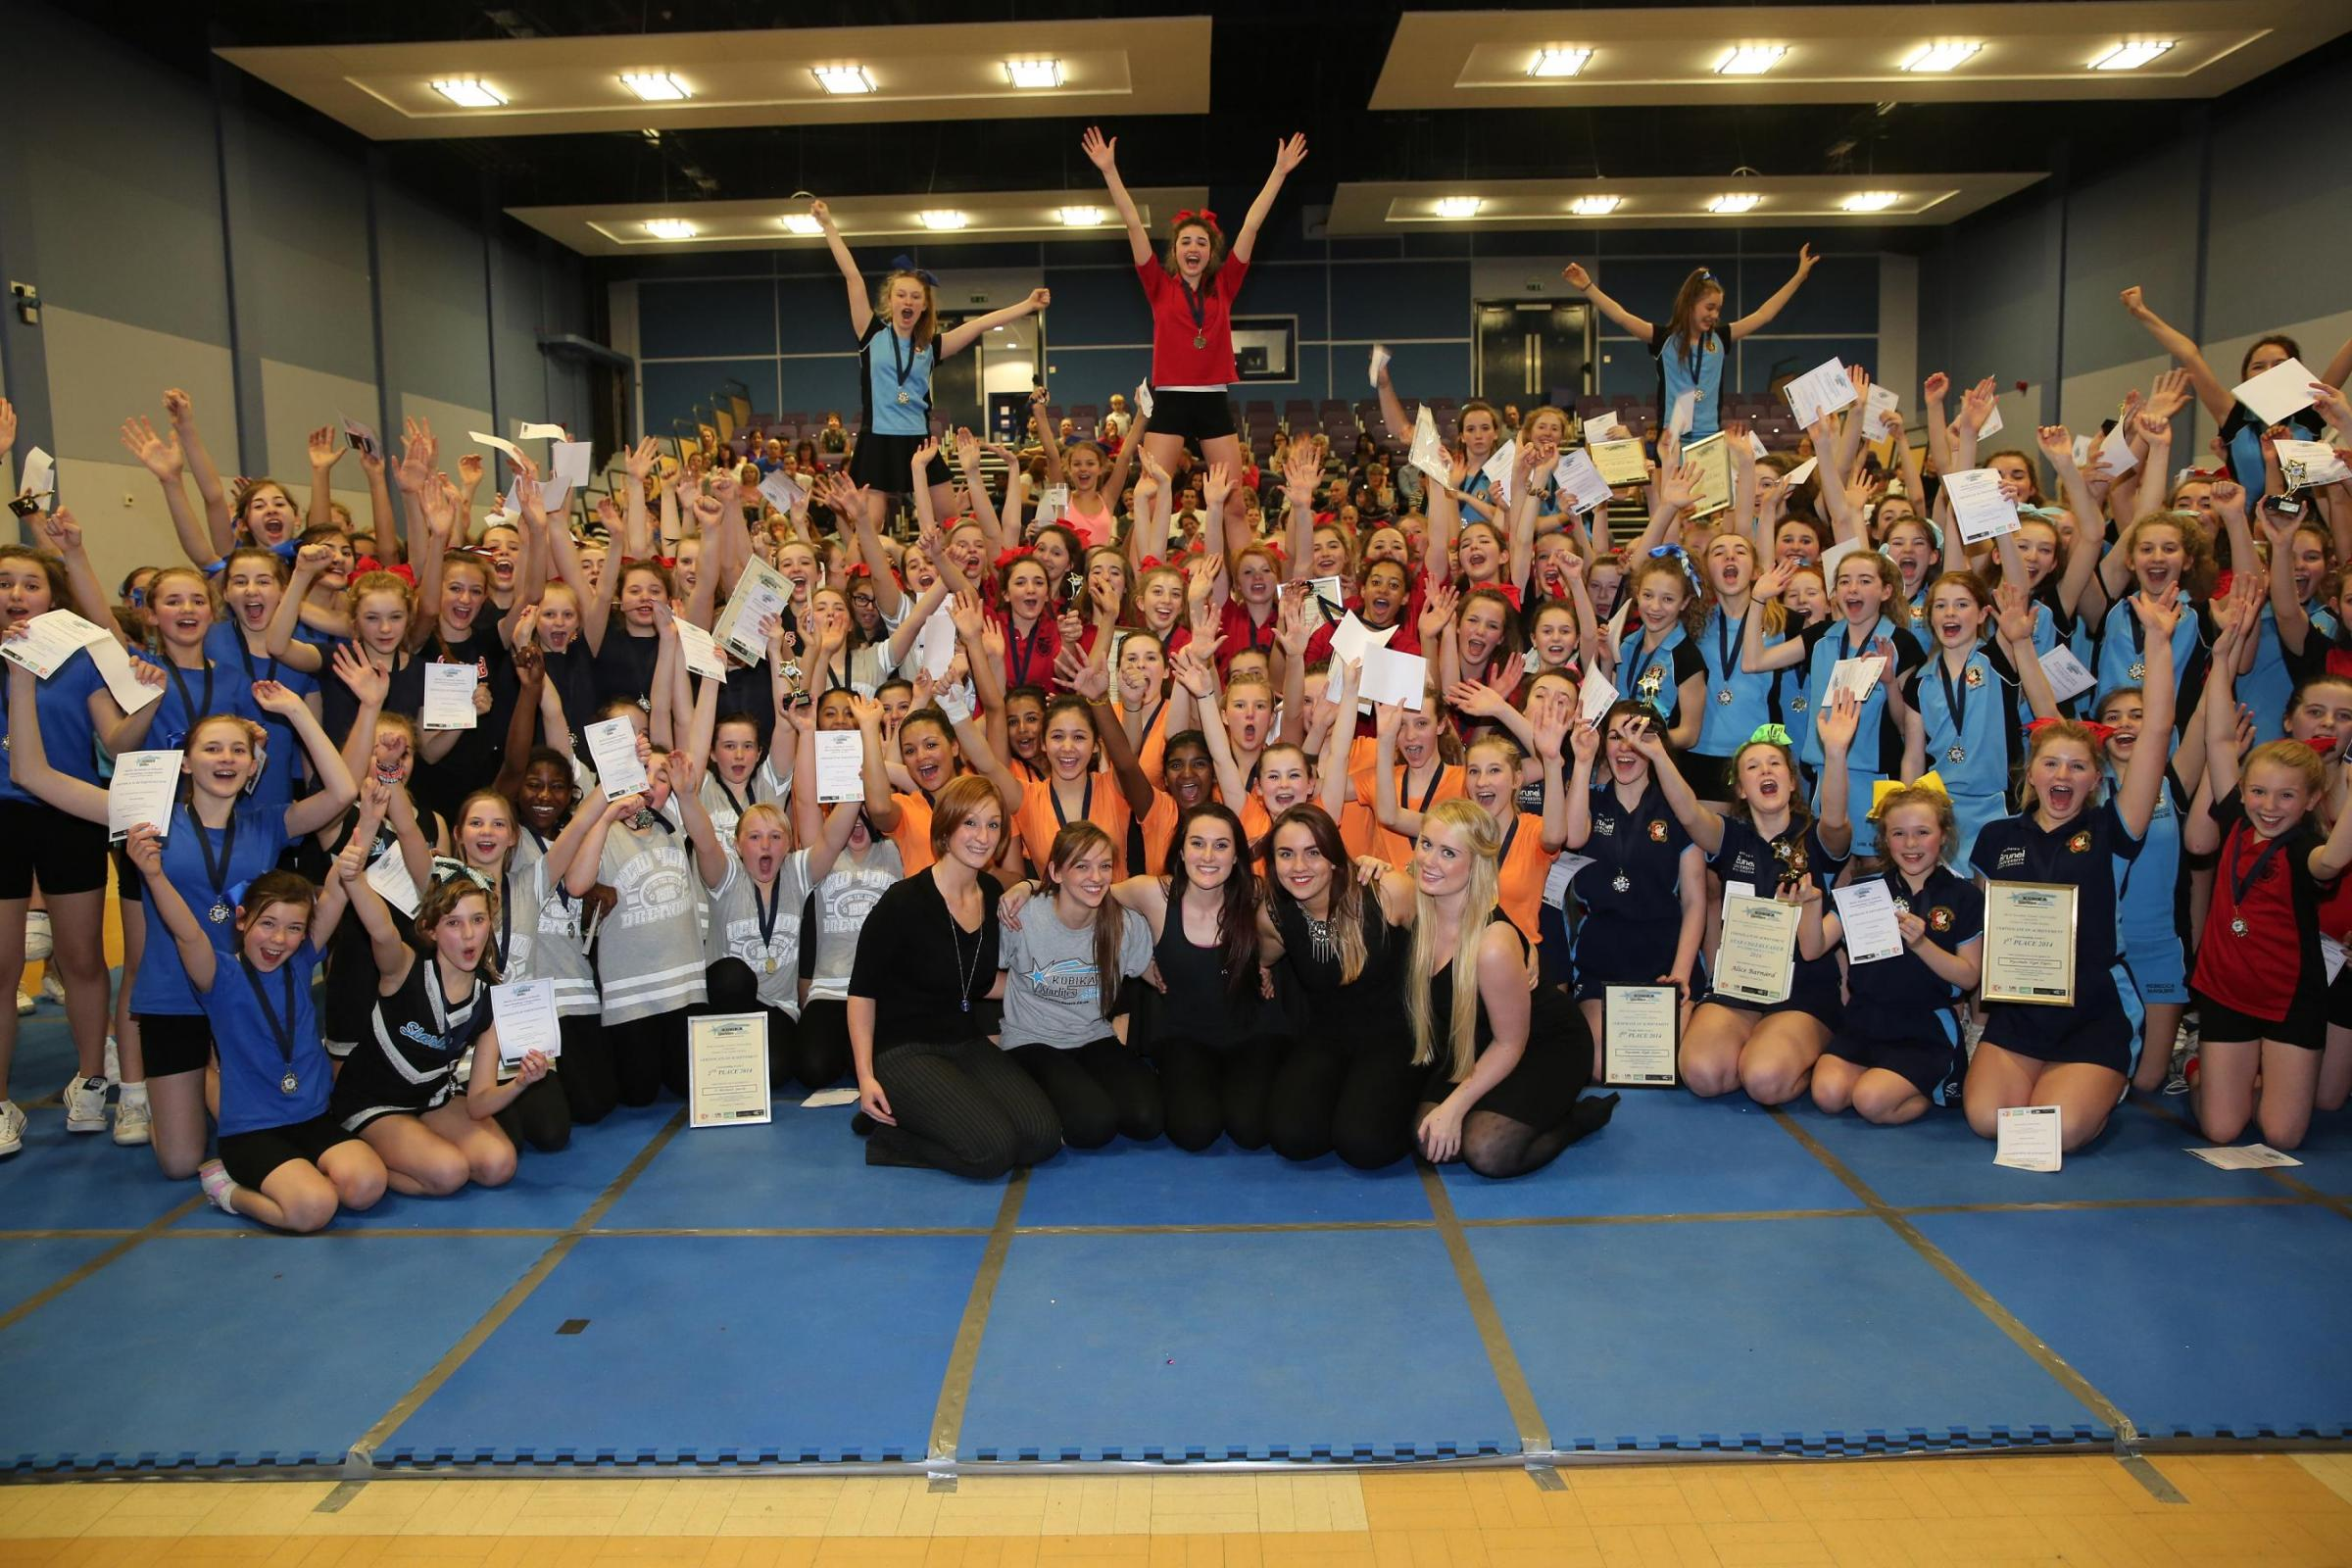 Schools take part in cheerleading contest